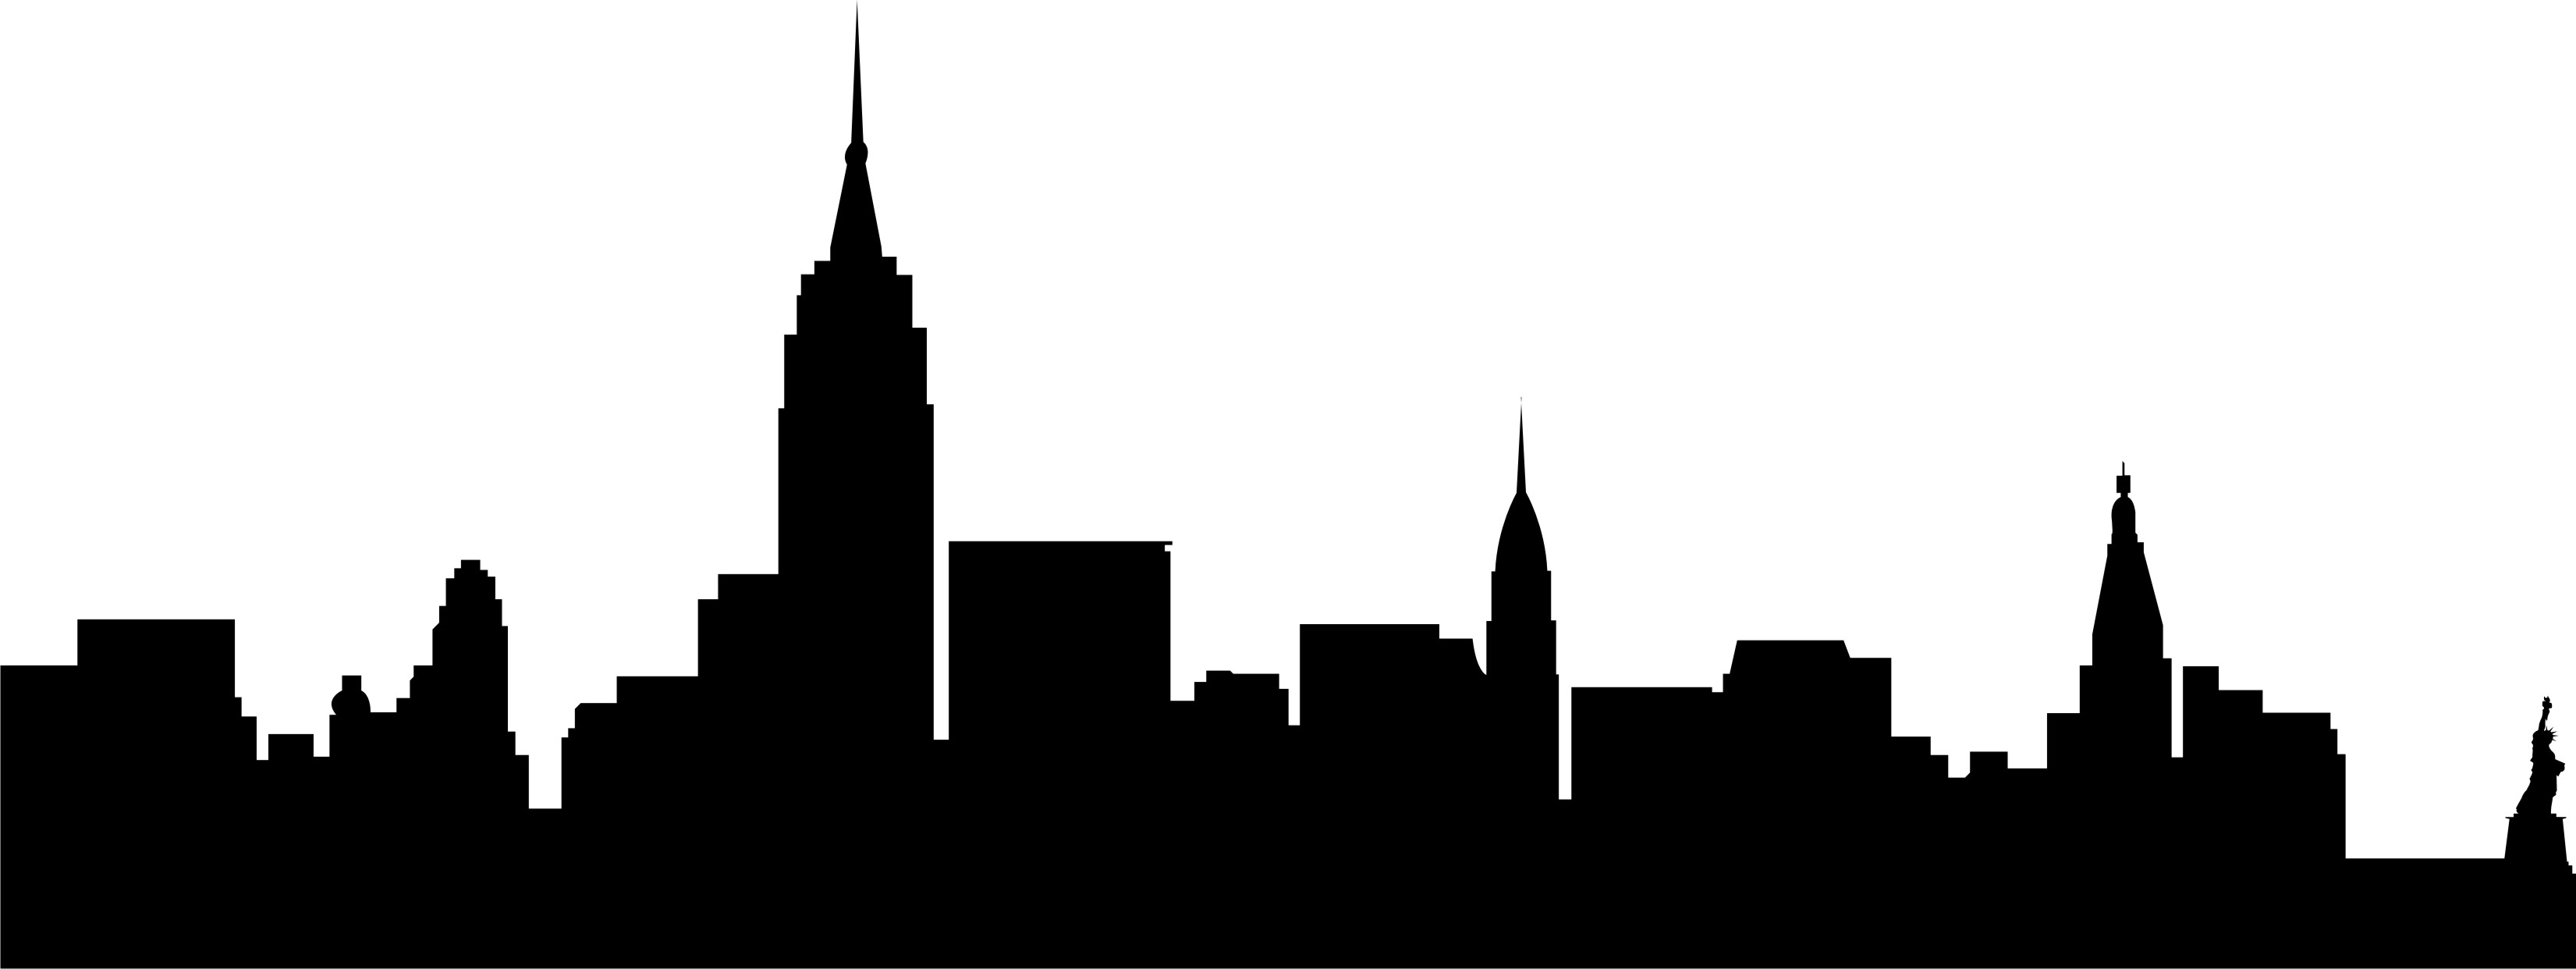 Buildings clipart city building. Silhouette at getdrawings com